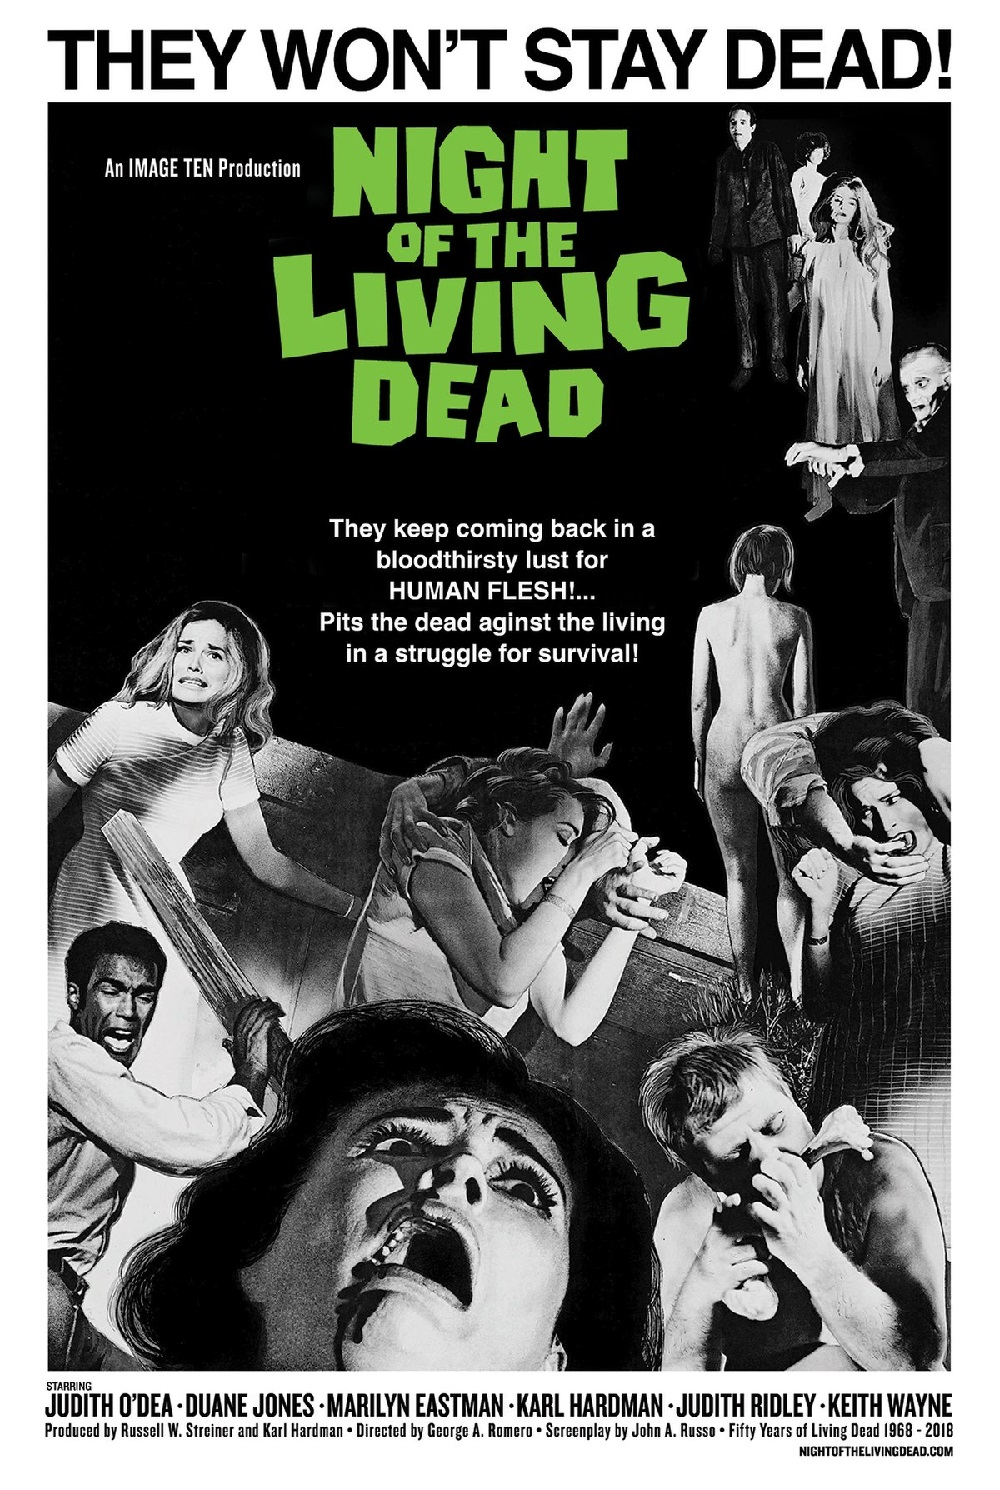 Review: 6 Days, 6 Movies, 6 Reviews : 6. Night Of The Living Dead